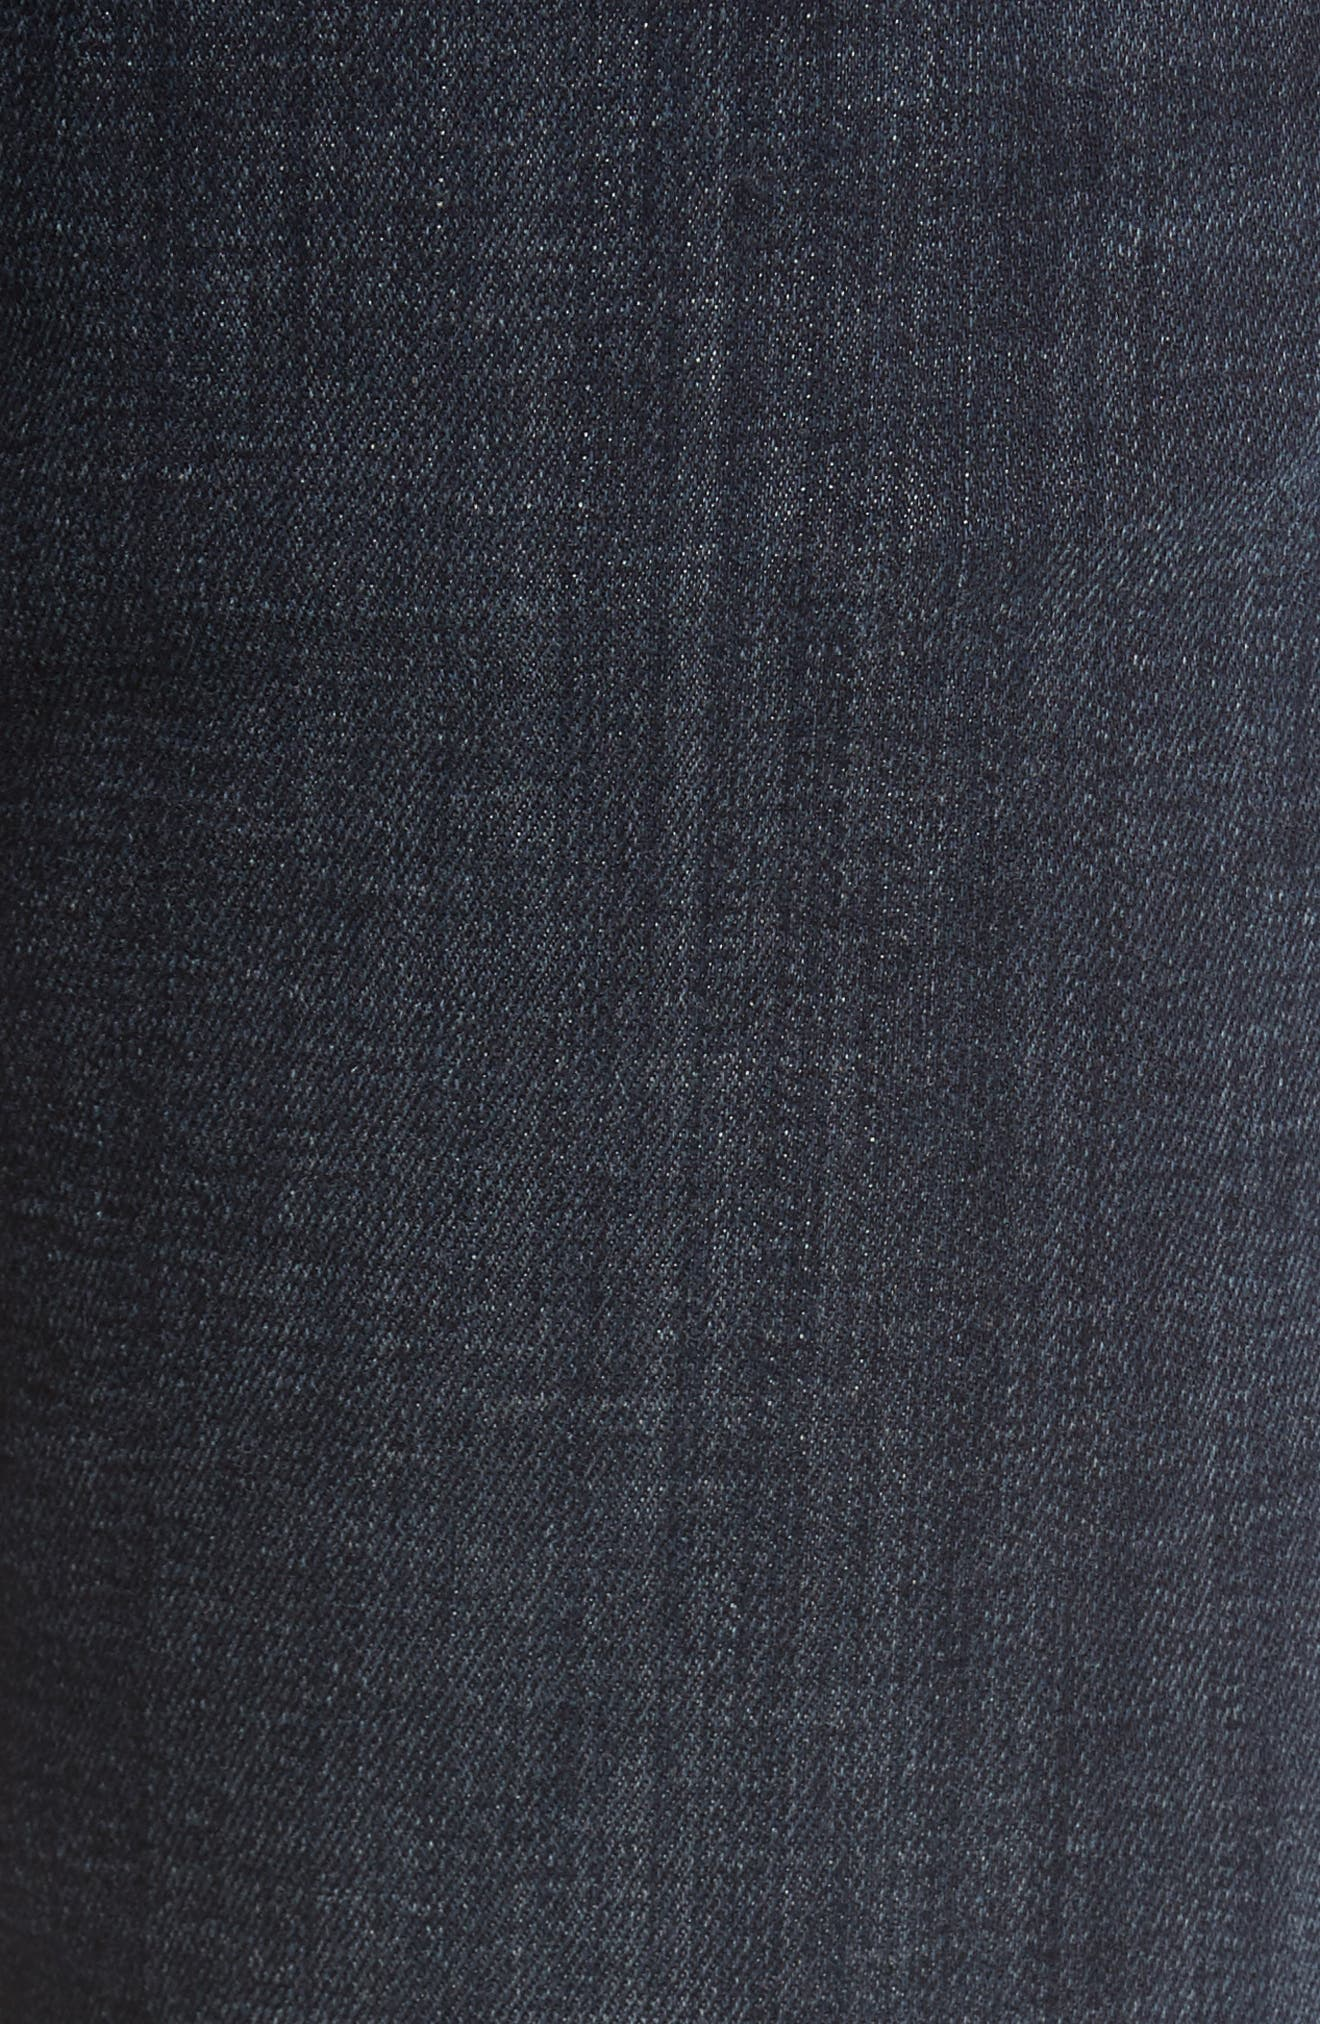 5011 Relaxed Fit Jeans,                             Alternate thumbnail 5, color,